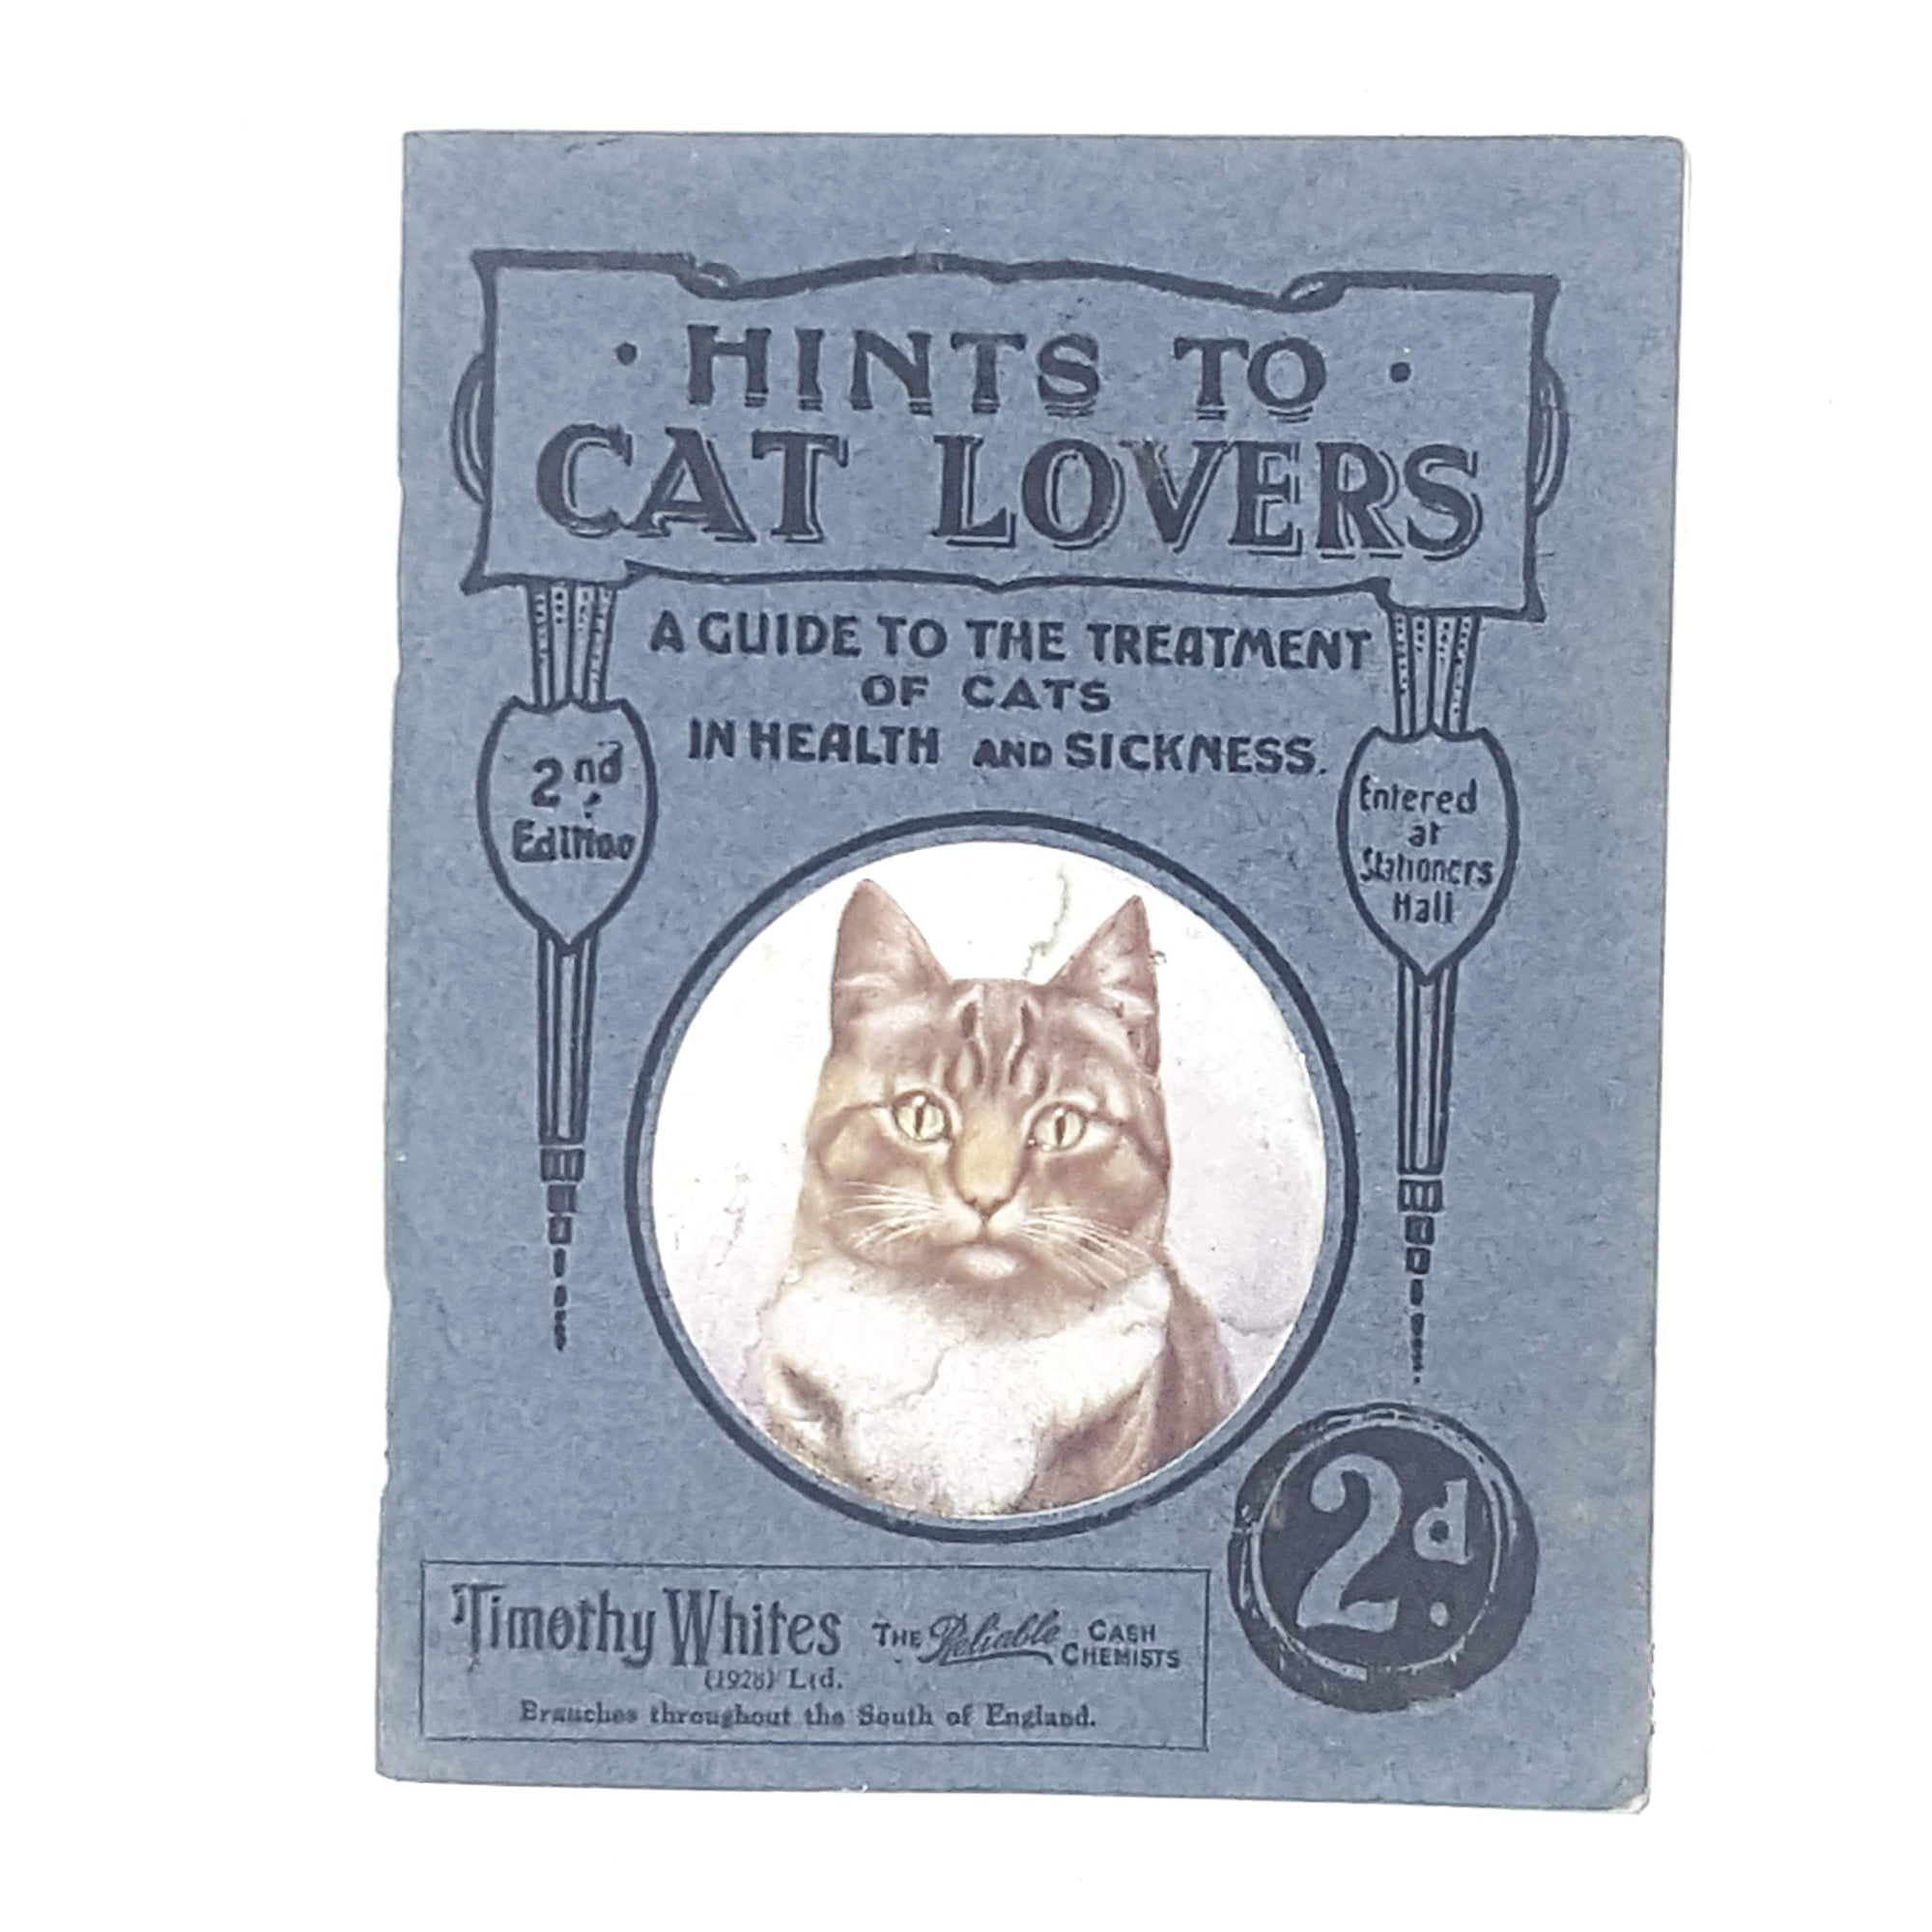 Hints to Cat Lovers 1927